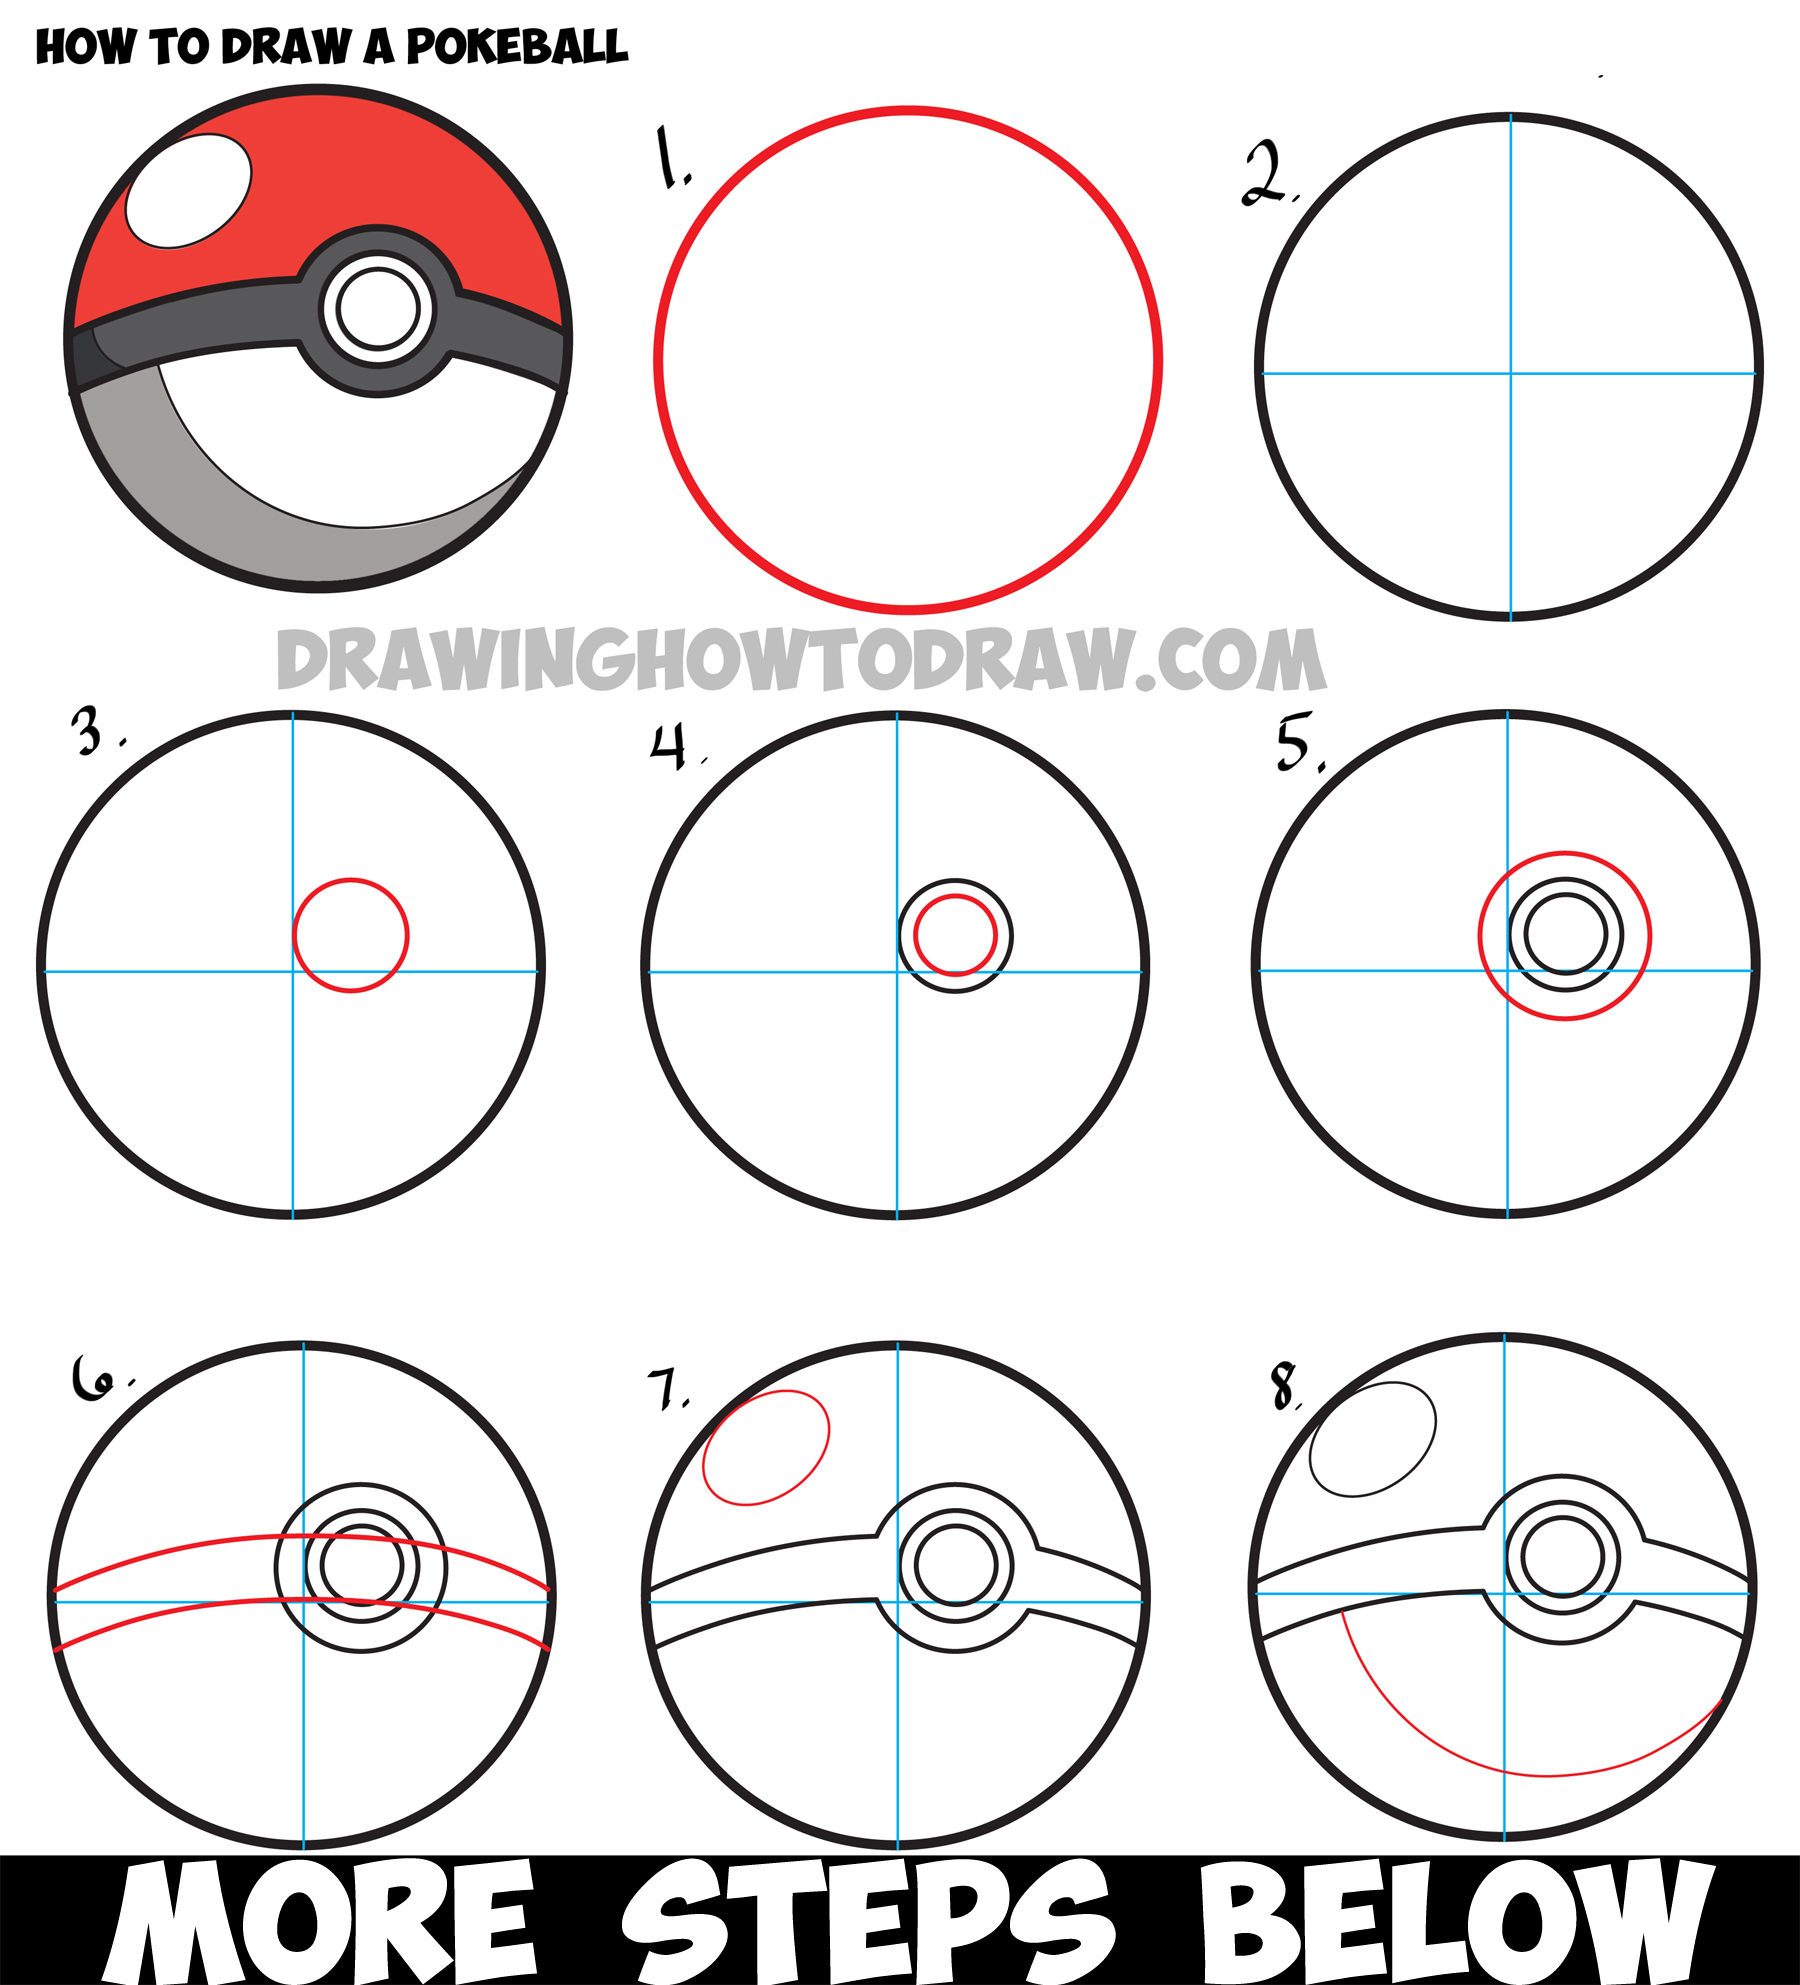 how to draw a pokeball from pokemon   easy step by step